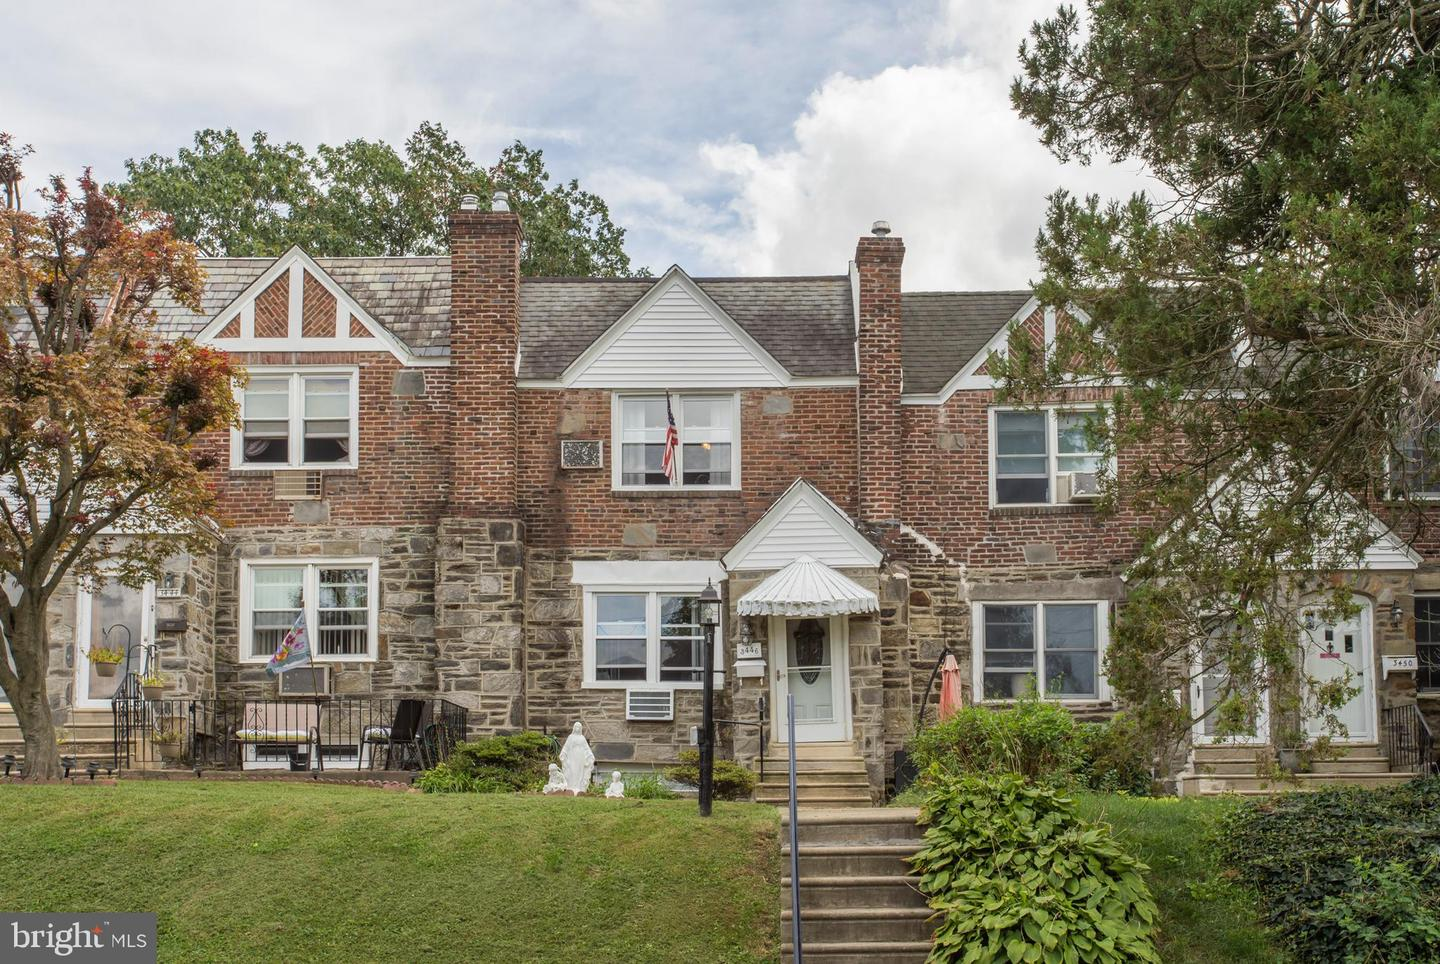 3446 Valley Green Drive Drexel Hill, PA 19026